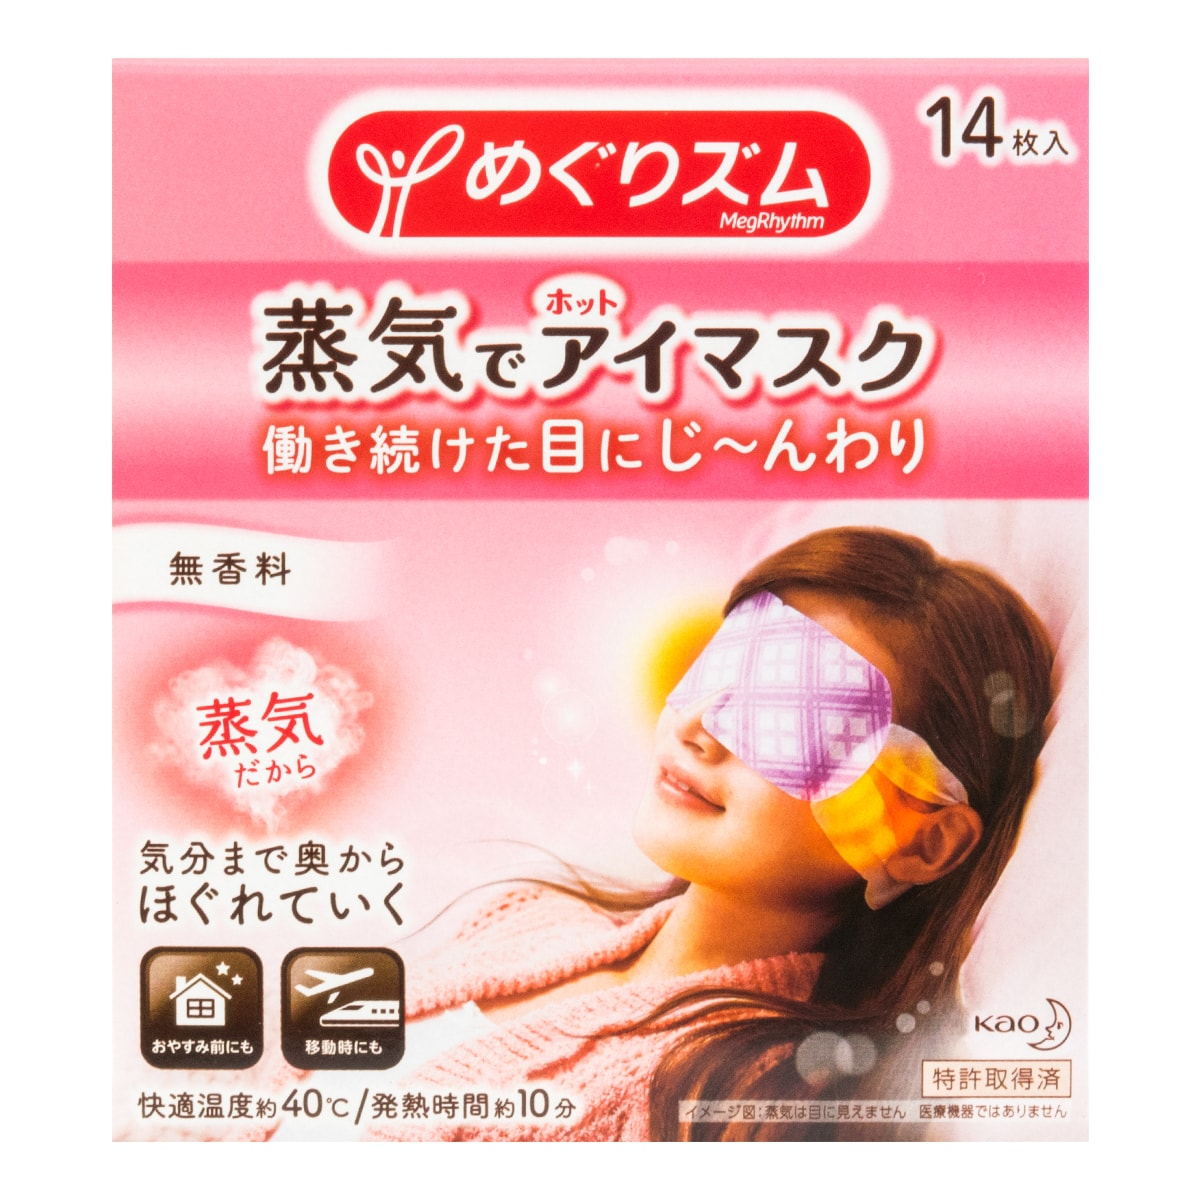 KAO MEGURISM Steam Eye Mask Unscented 14 Pieces